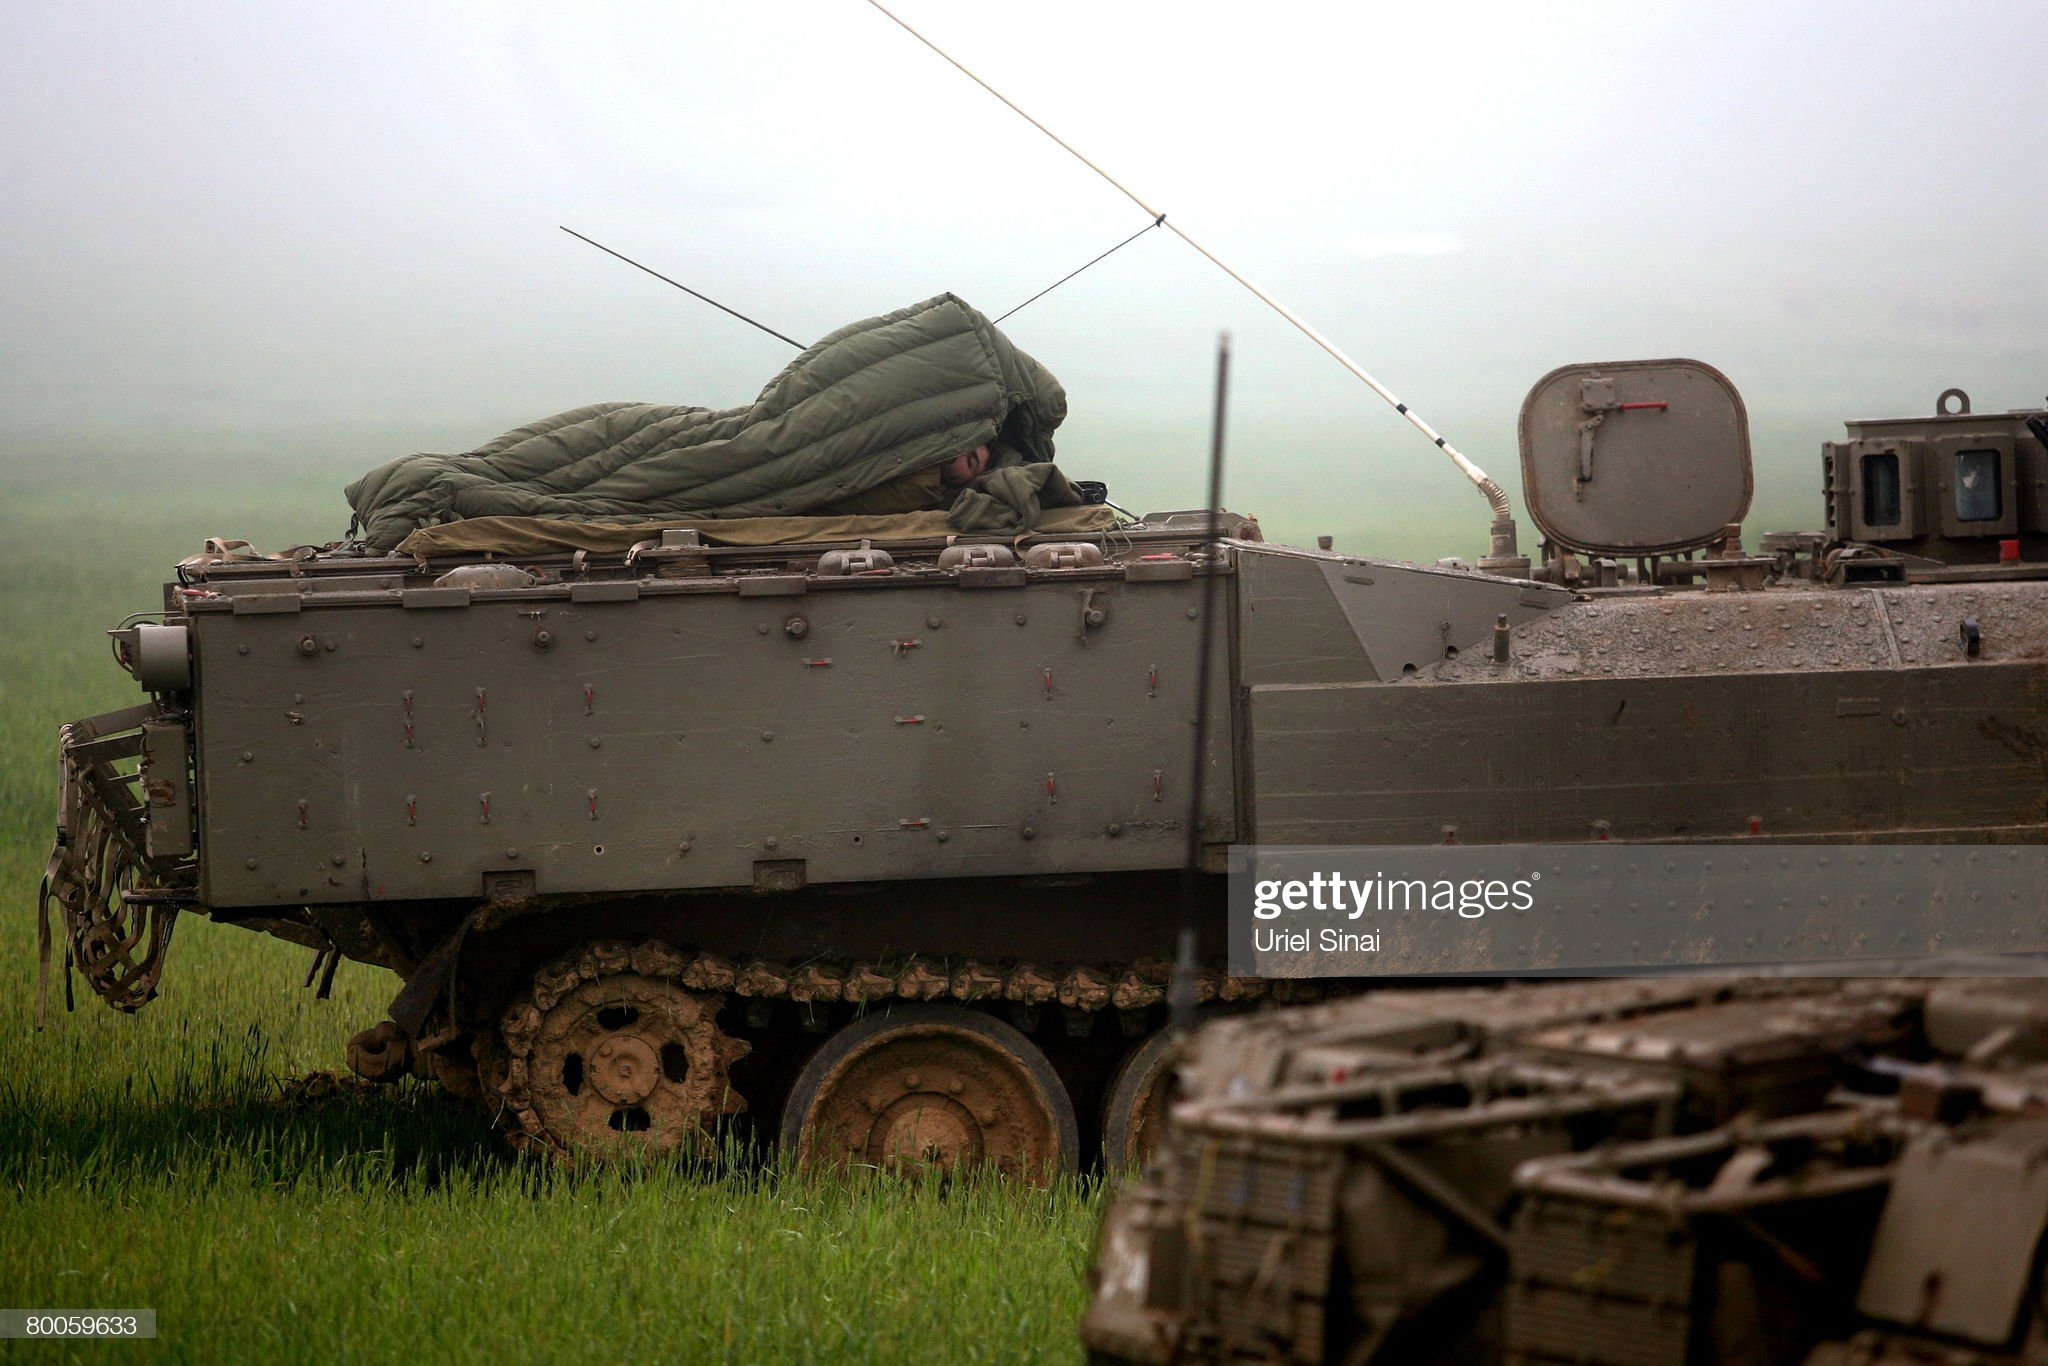 https://media.gettyimages.com/photos/an-israeli-soldier-wakes-up-on-top-of-a-tank-on-the-israeli-side-of-picture-id80059633?s=2048x2048